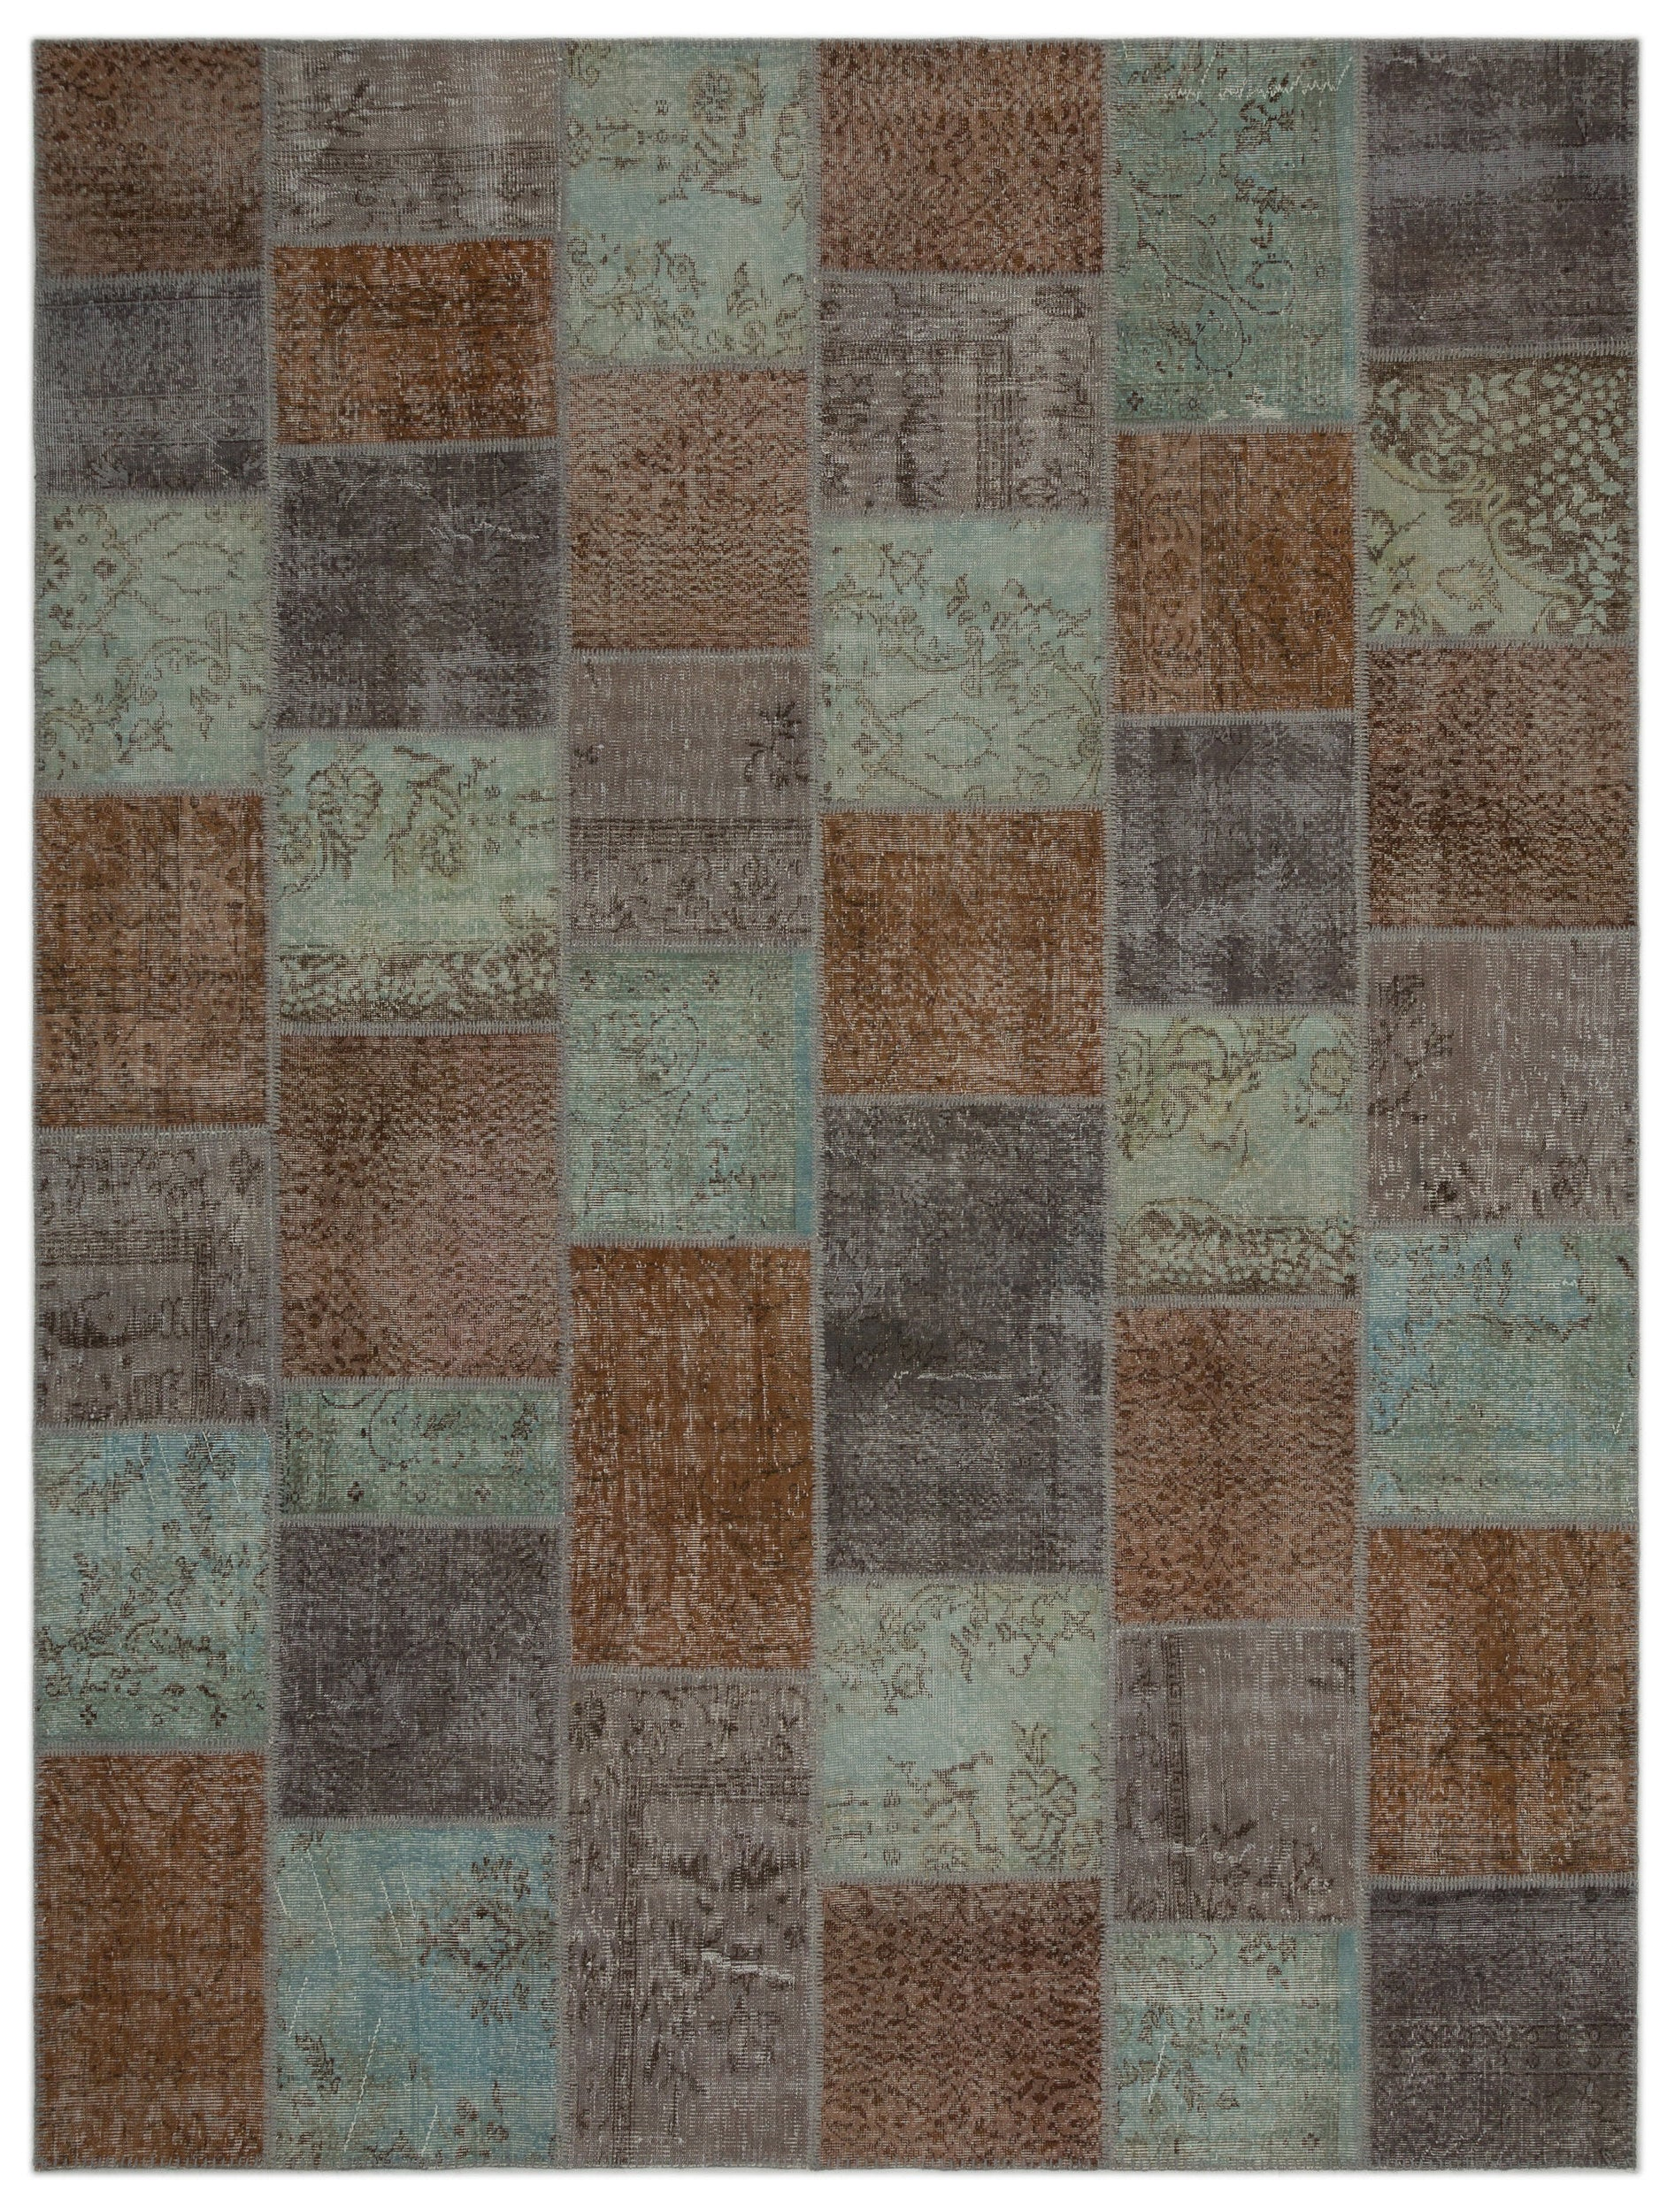 Gray Over Dyed Patchwork Unique Rug 8'12'' x 11'12'' ft 274 x 365 cm